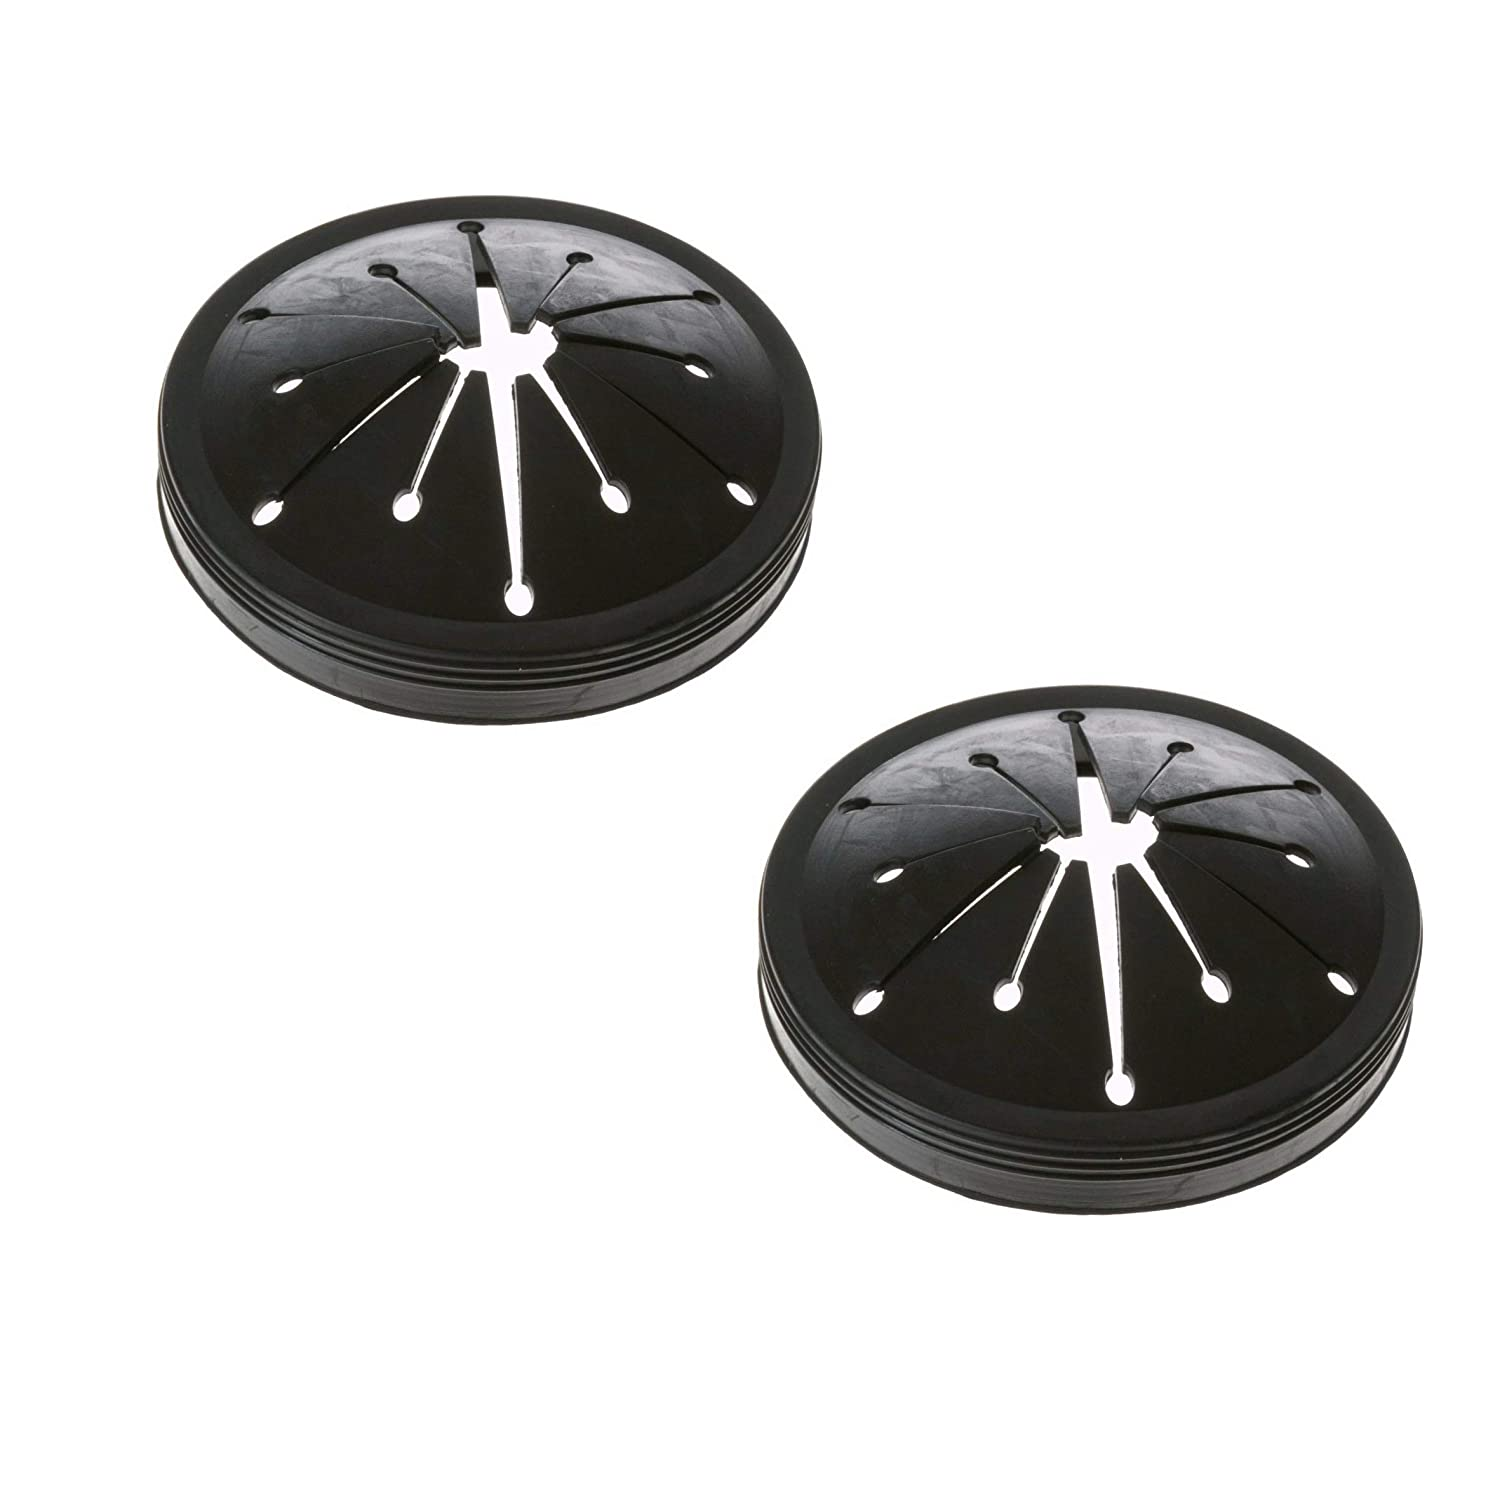 Podoy WC03X10010 Garbage Disposal Splash Guard for GE WC03X10010 Black Sink (Pack of 2) 10UA07070